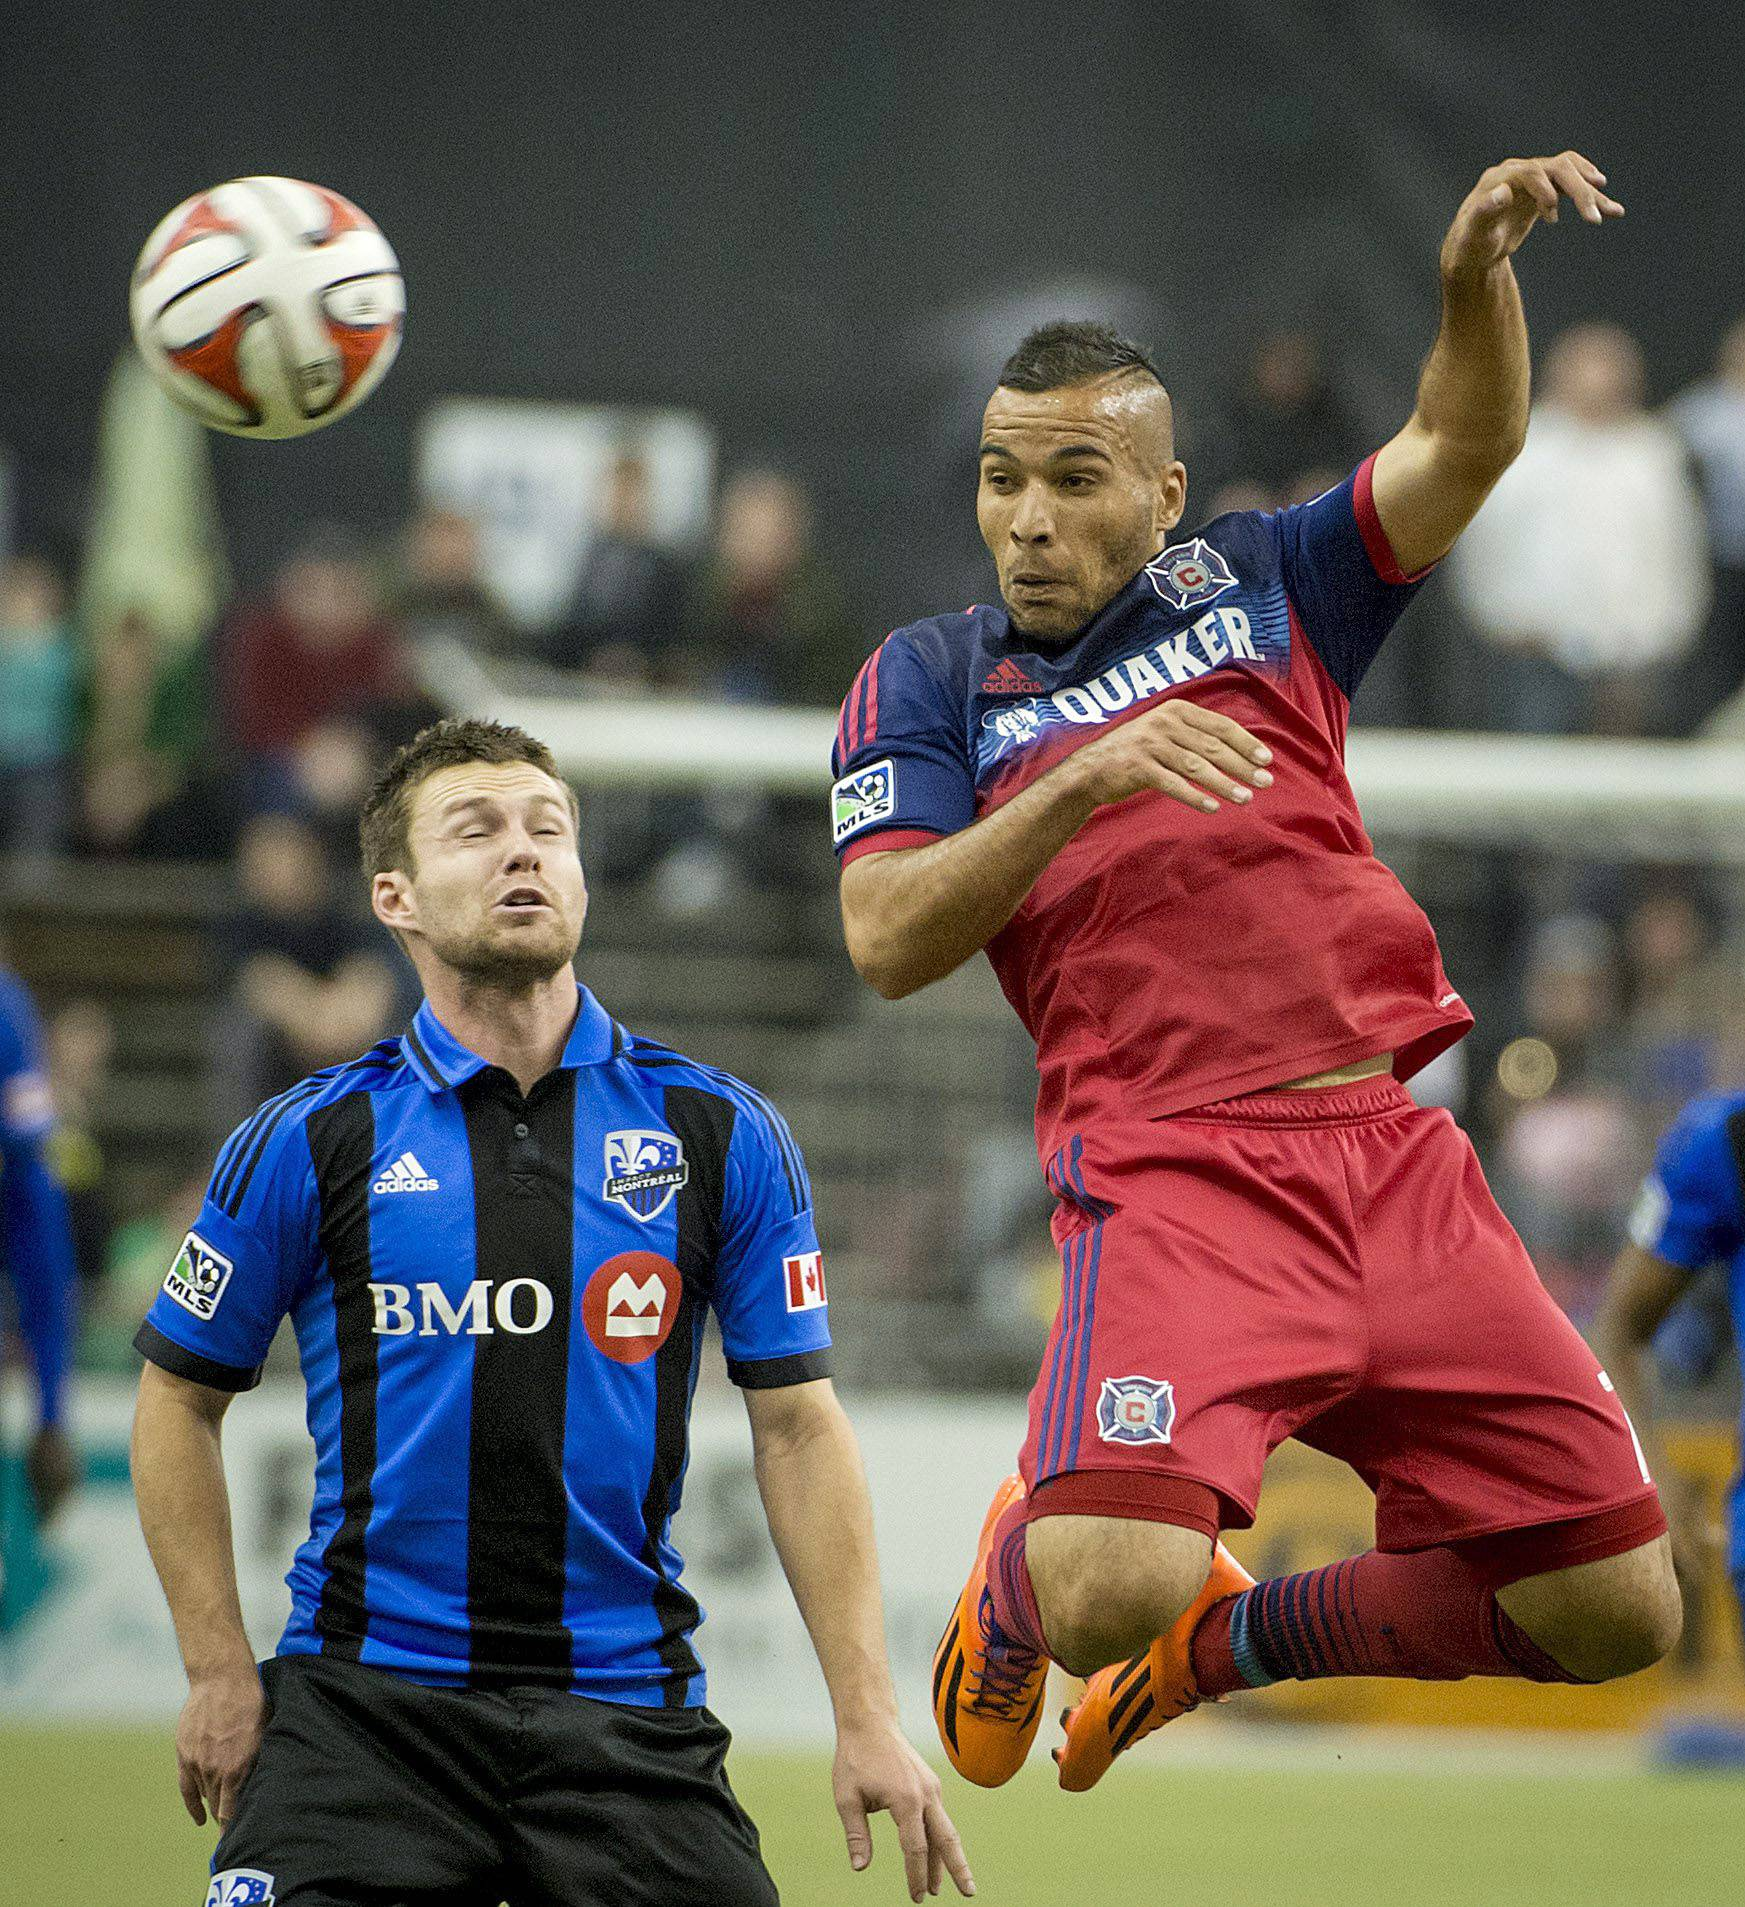 Montreal Impact's Jack McInerney stands near as the Chicago Fire's Alex heads the ball during a soccer game Saturday in Montreal.